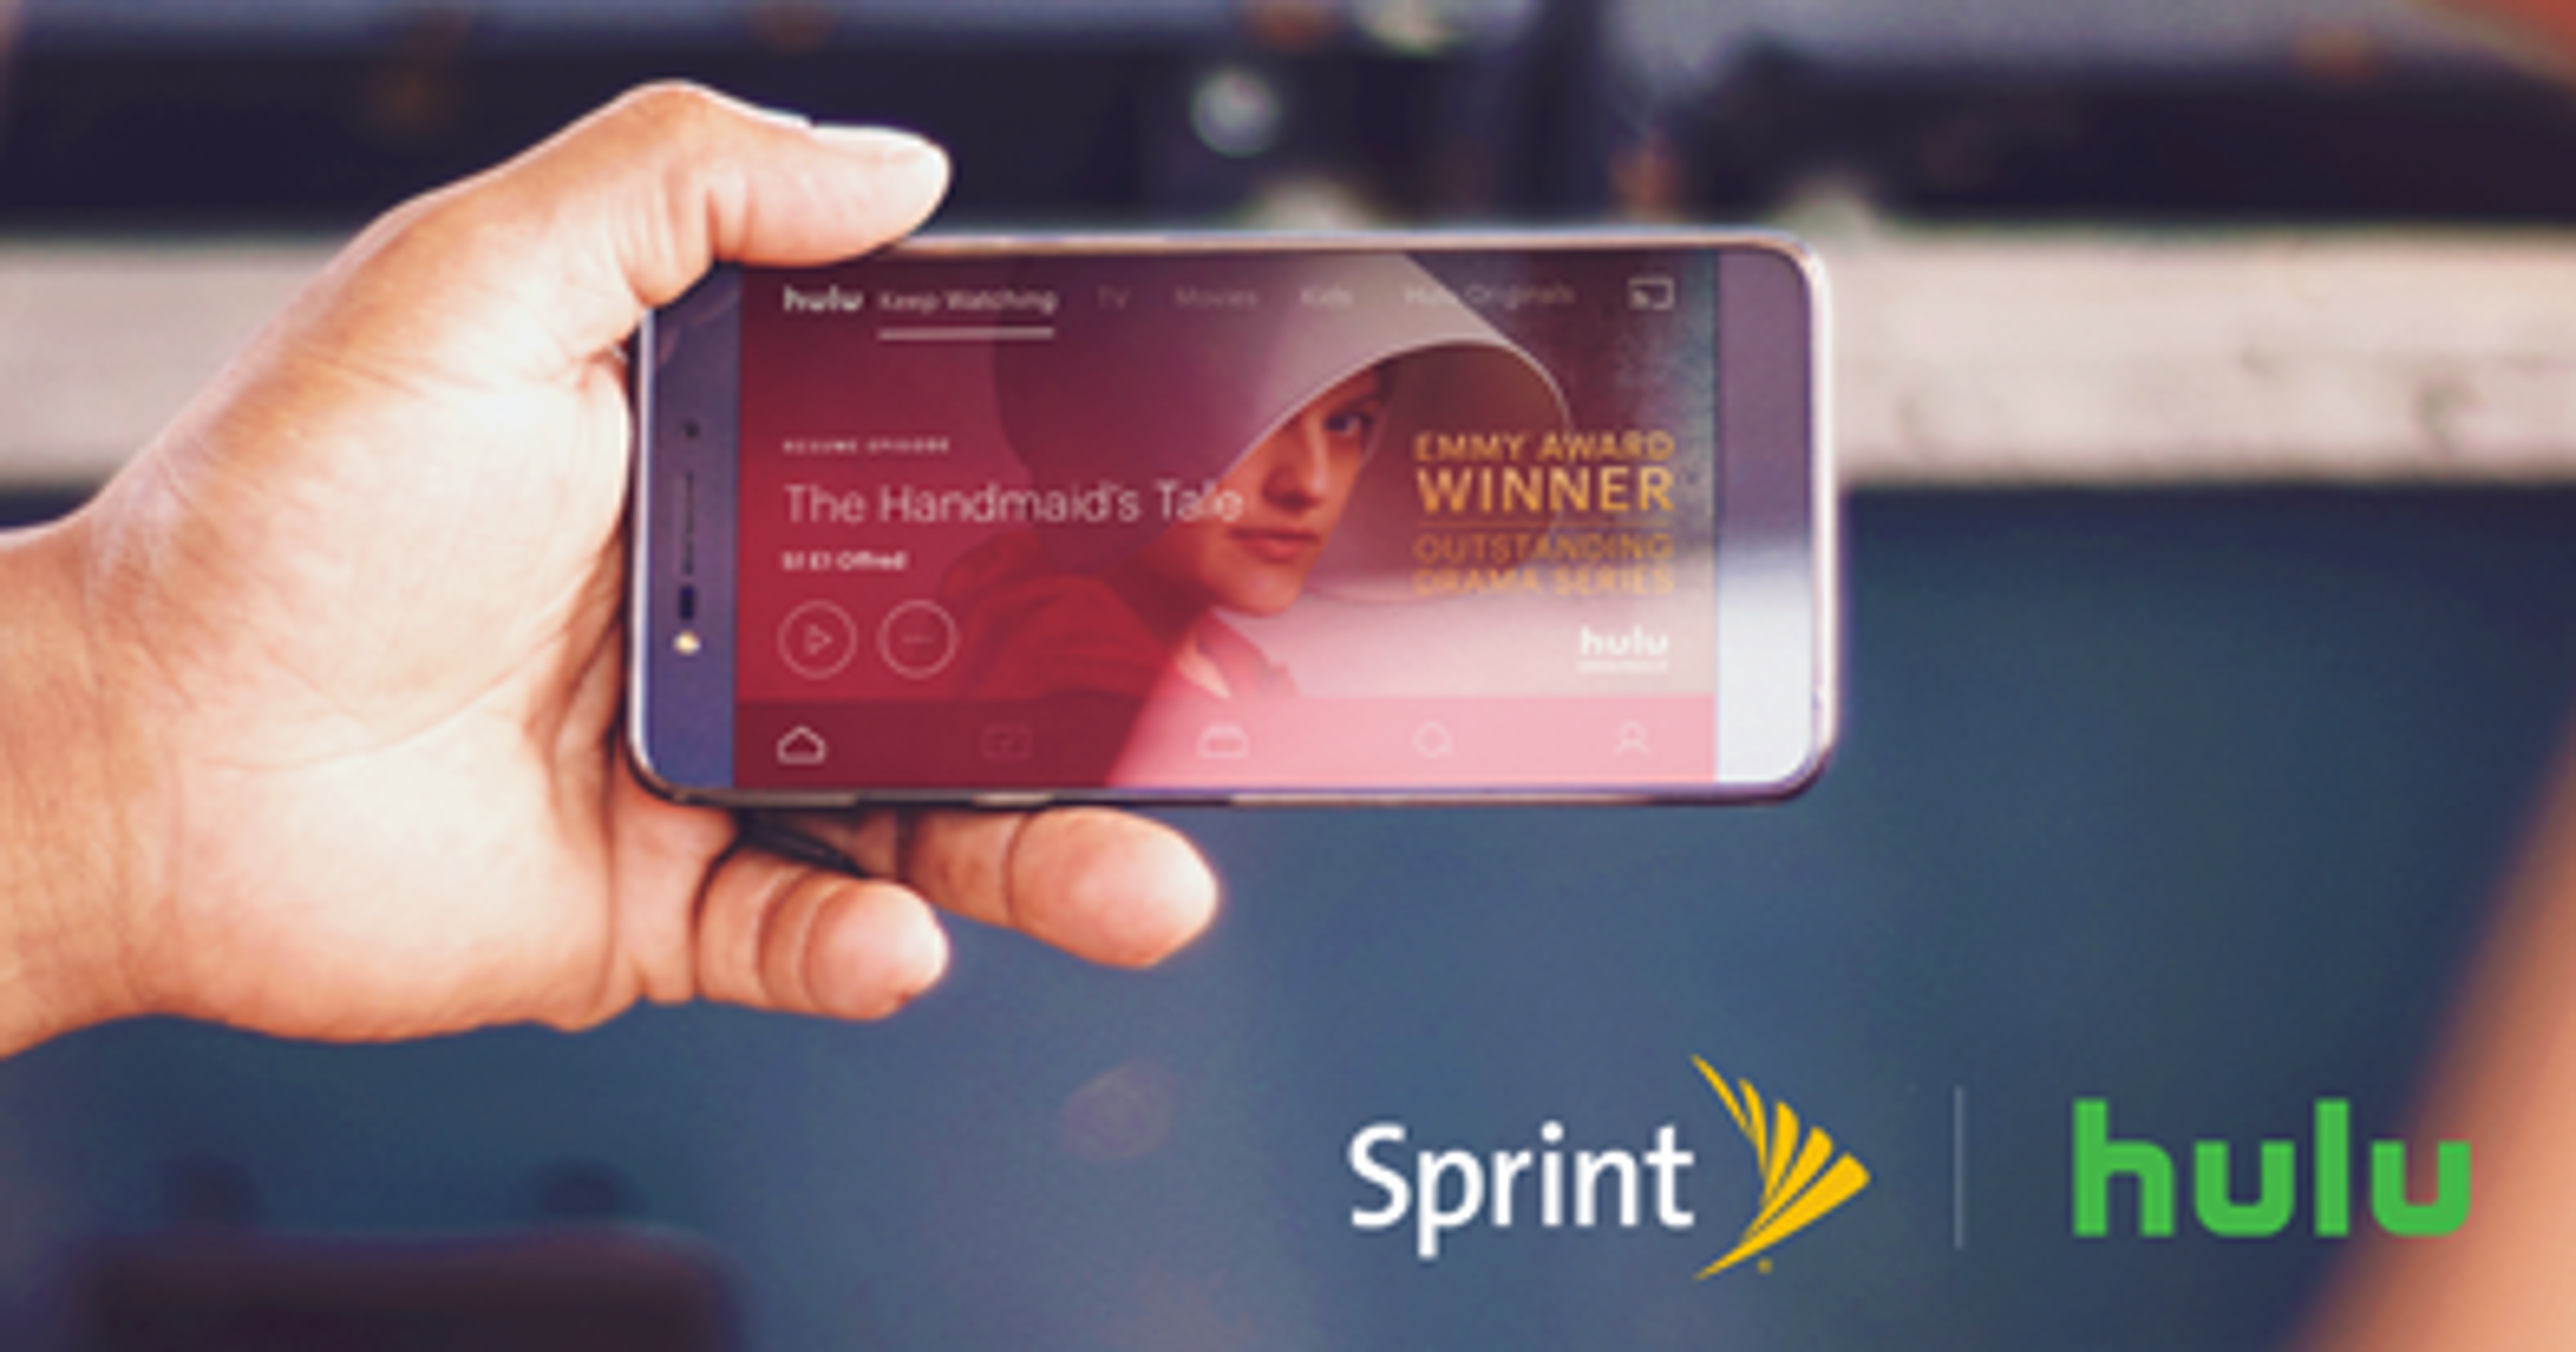 Sprint S Latest Bid To Lure Customers Free Hulu